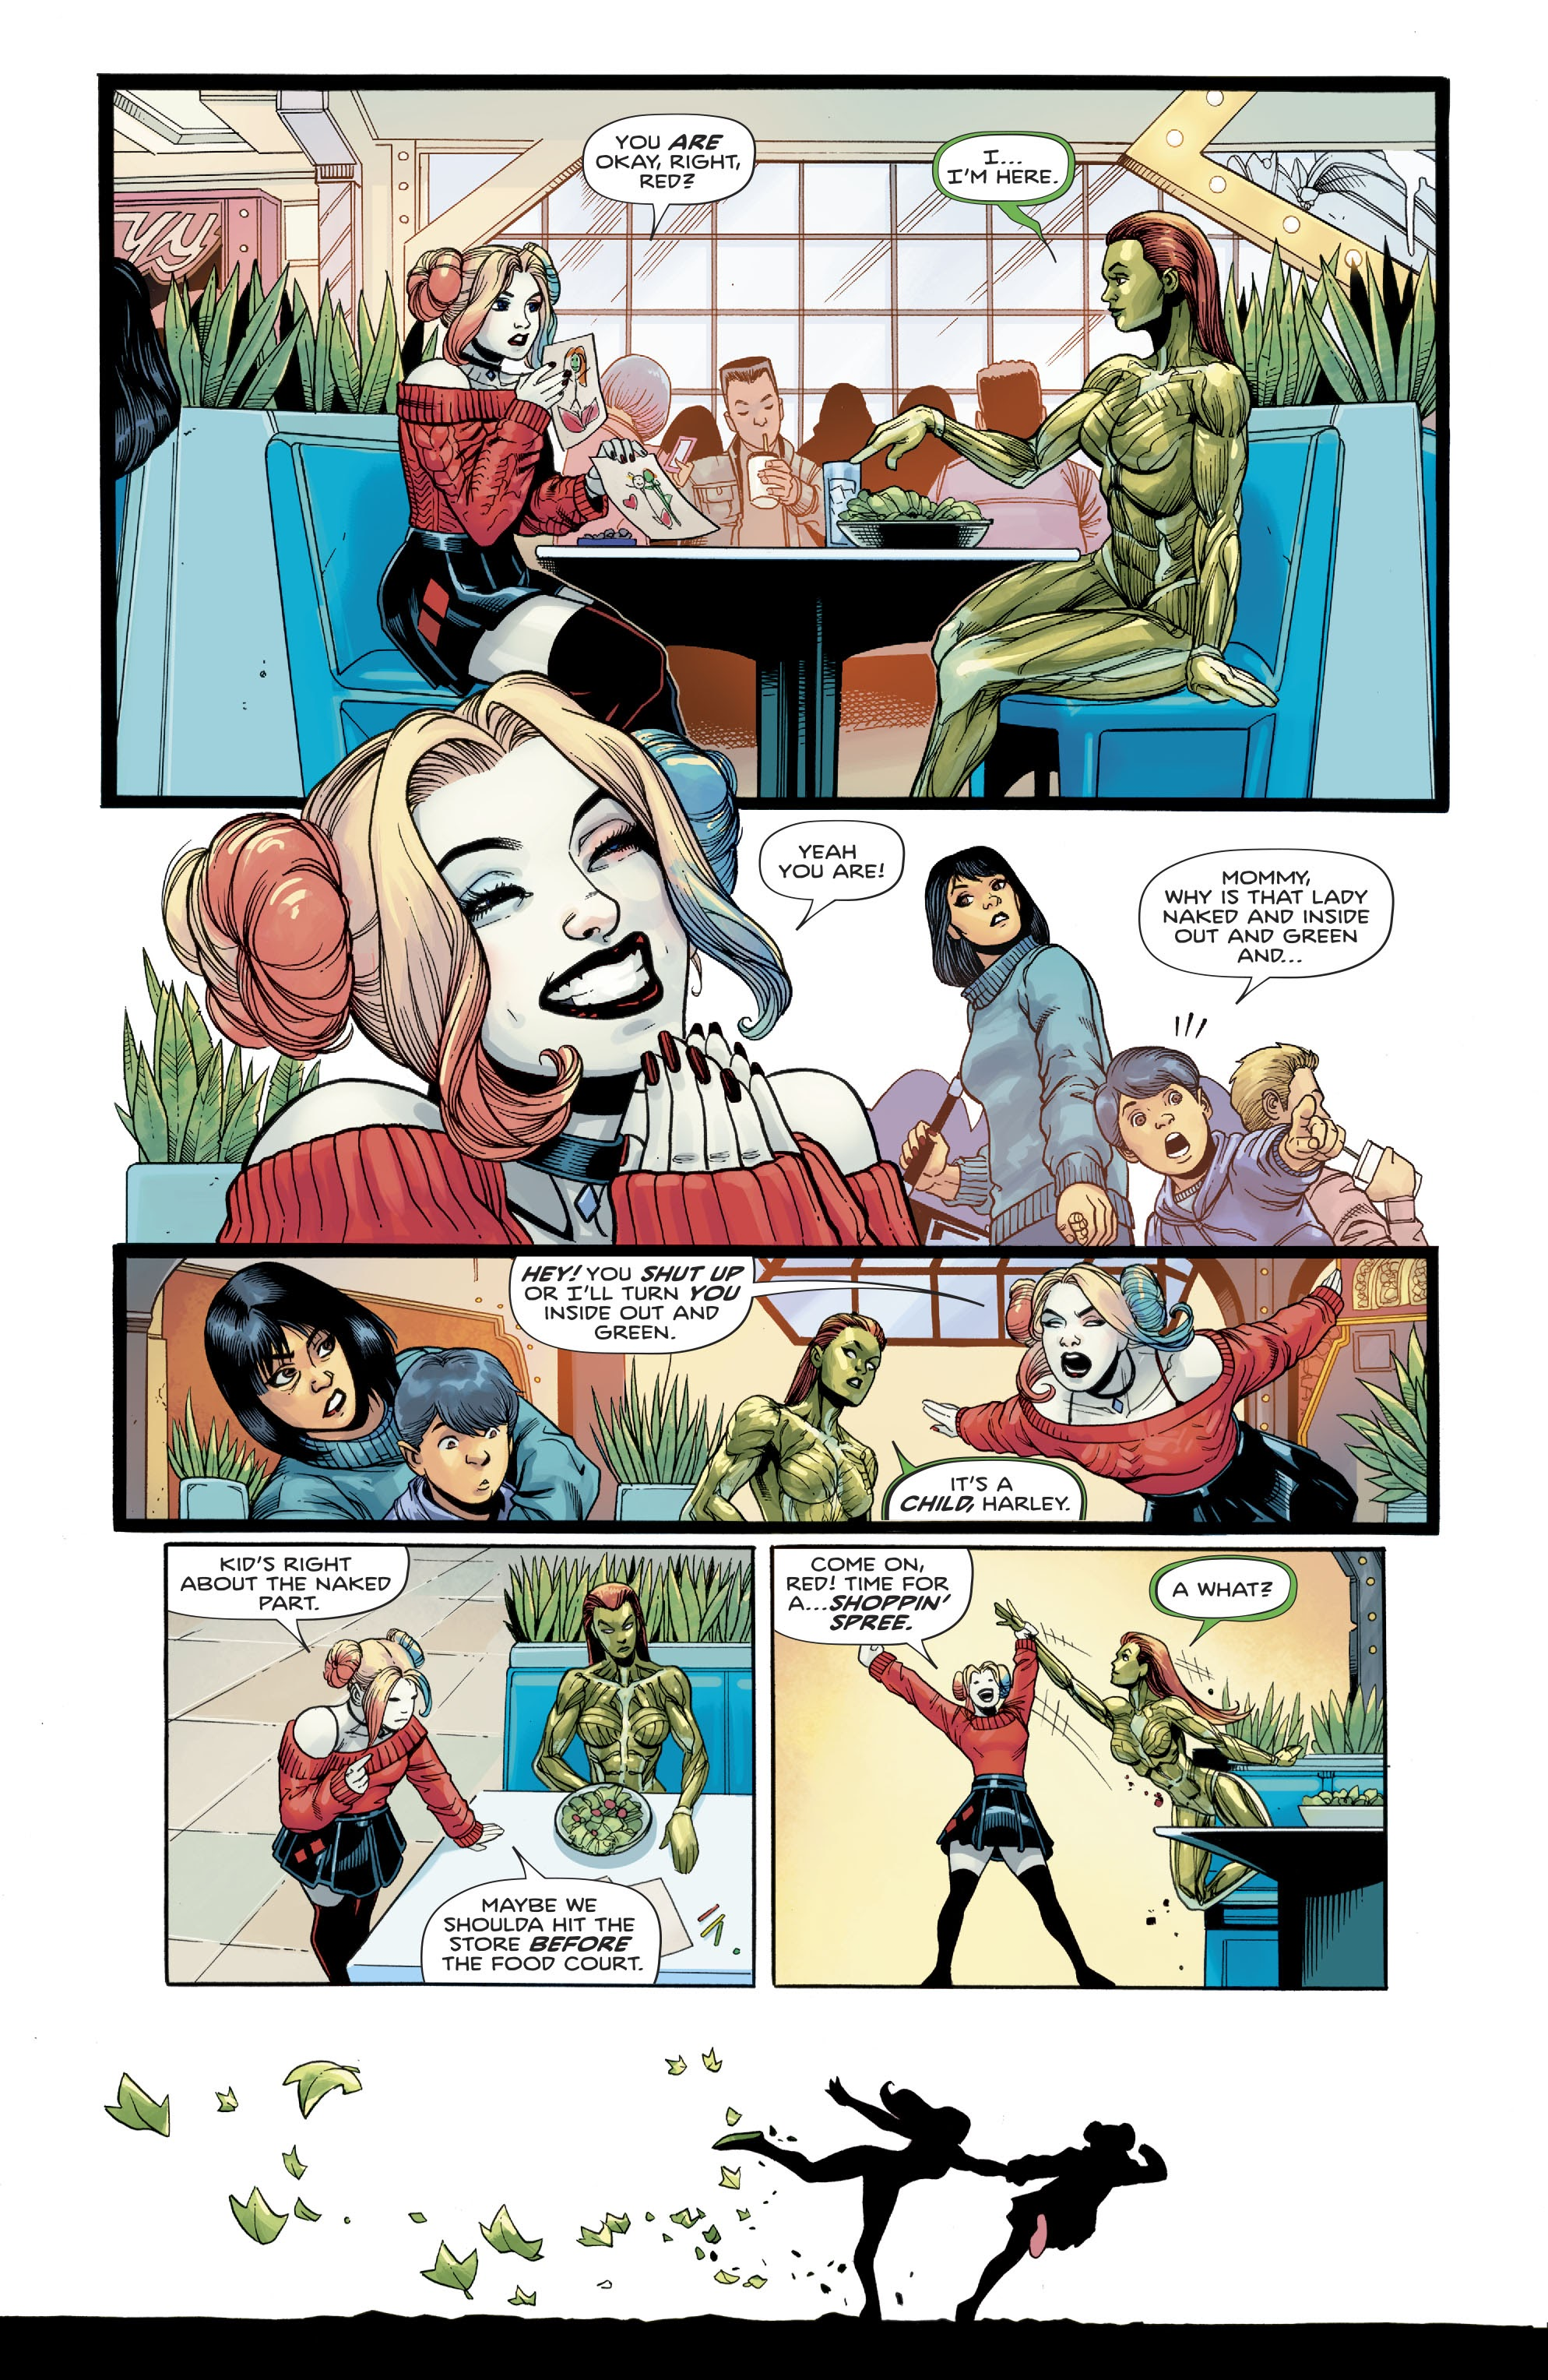 Comic Page Featuring conversation between Harley Quinn and Ivy